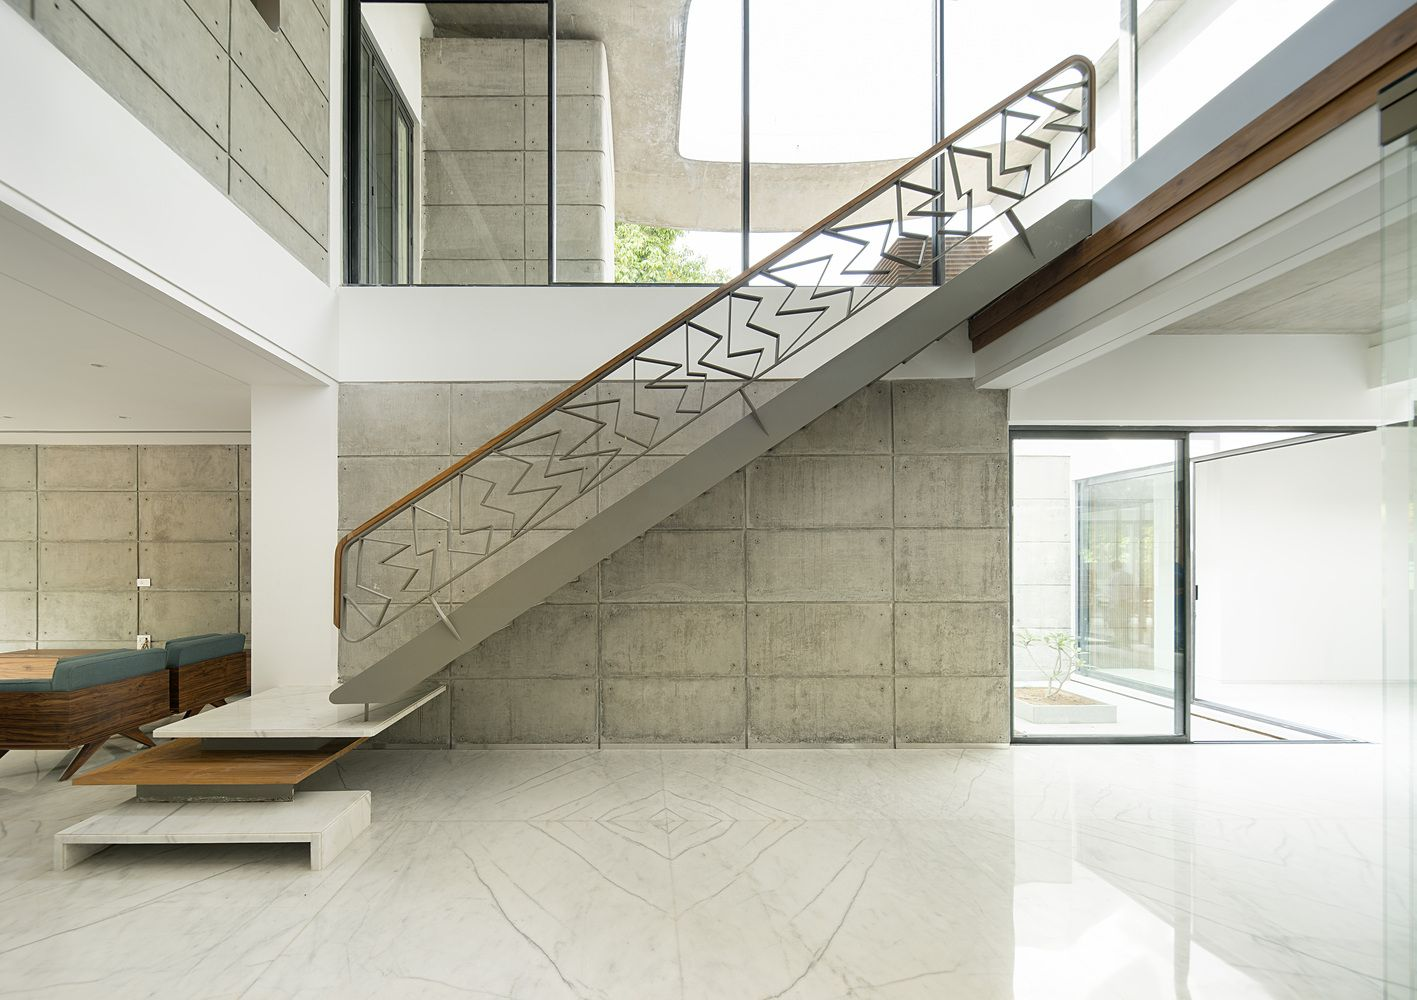 Gallery Of Residence 1065 Charged Voids 9 In 2020 Modernist Architects Hall Interior Design Architect